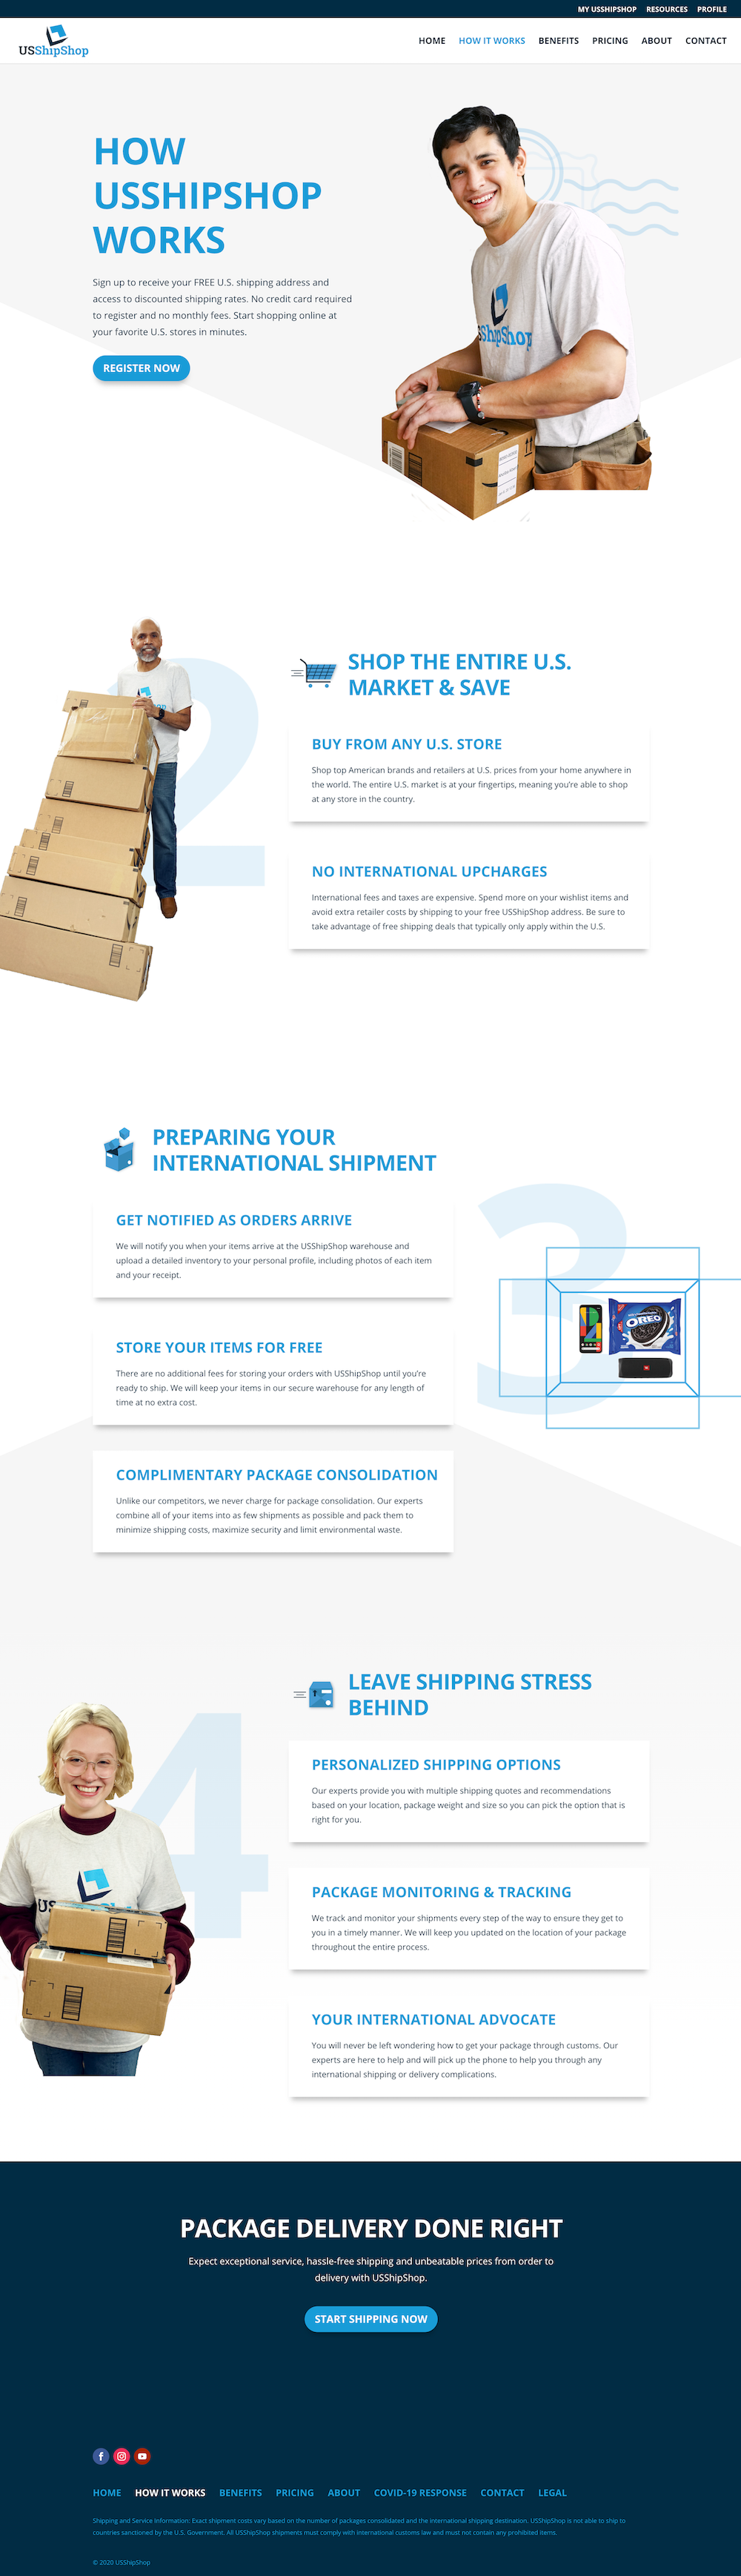 USShipShop How it Works Page